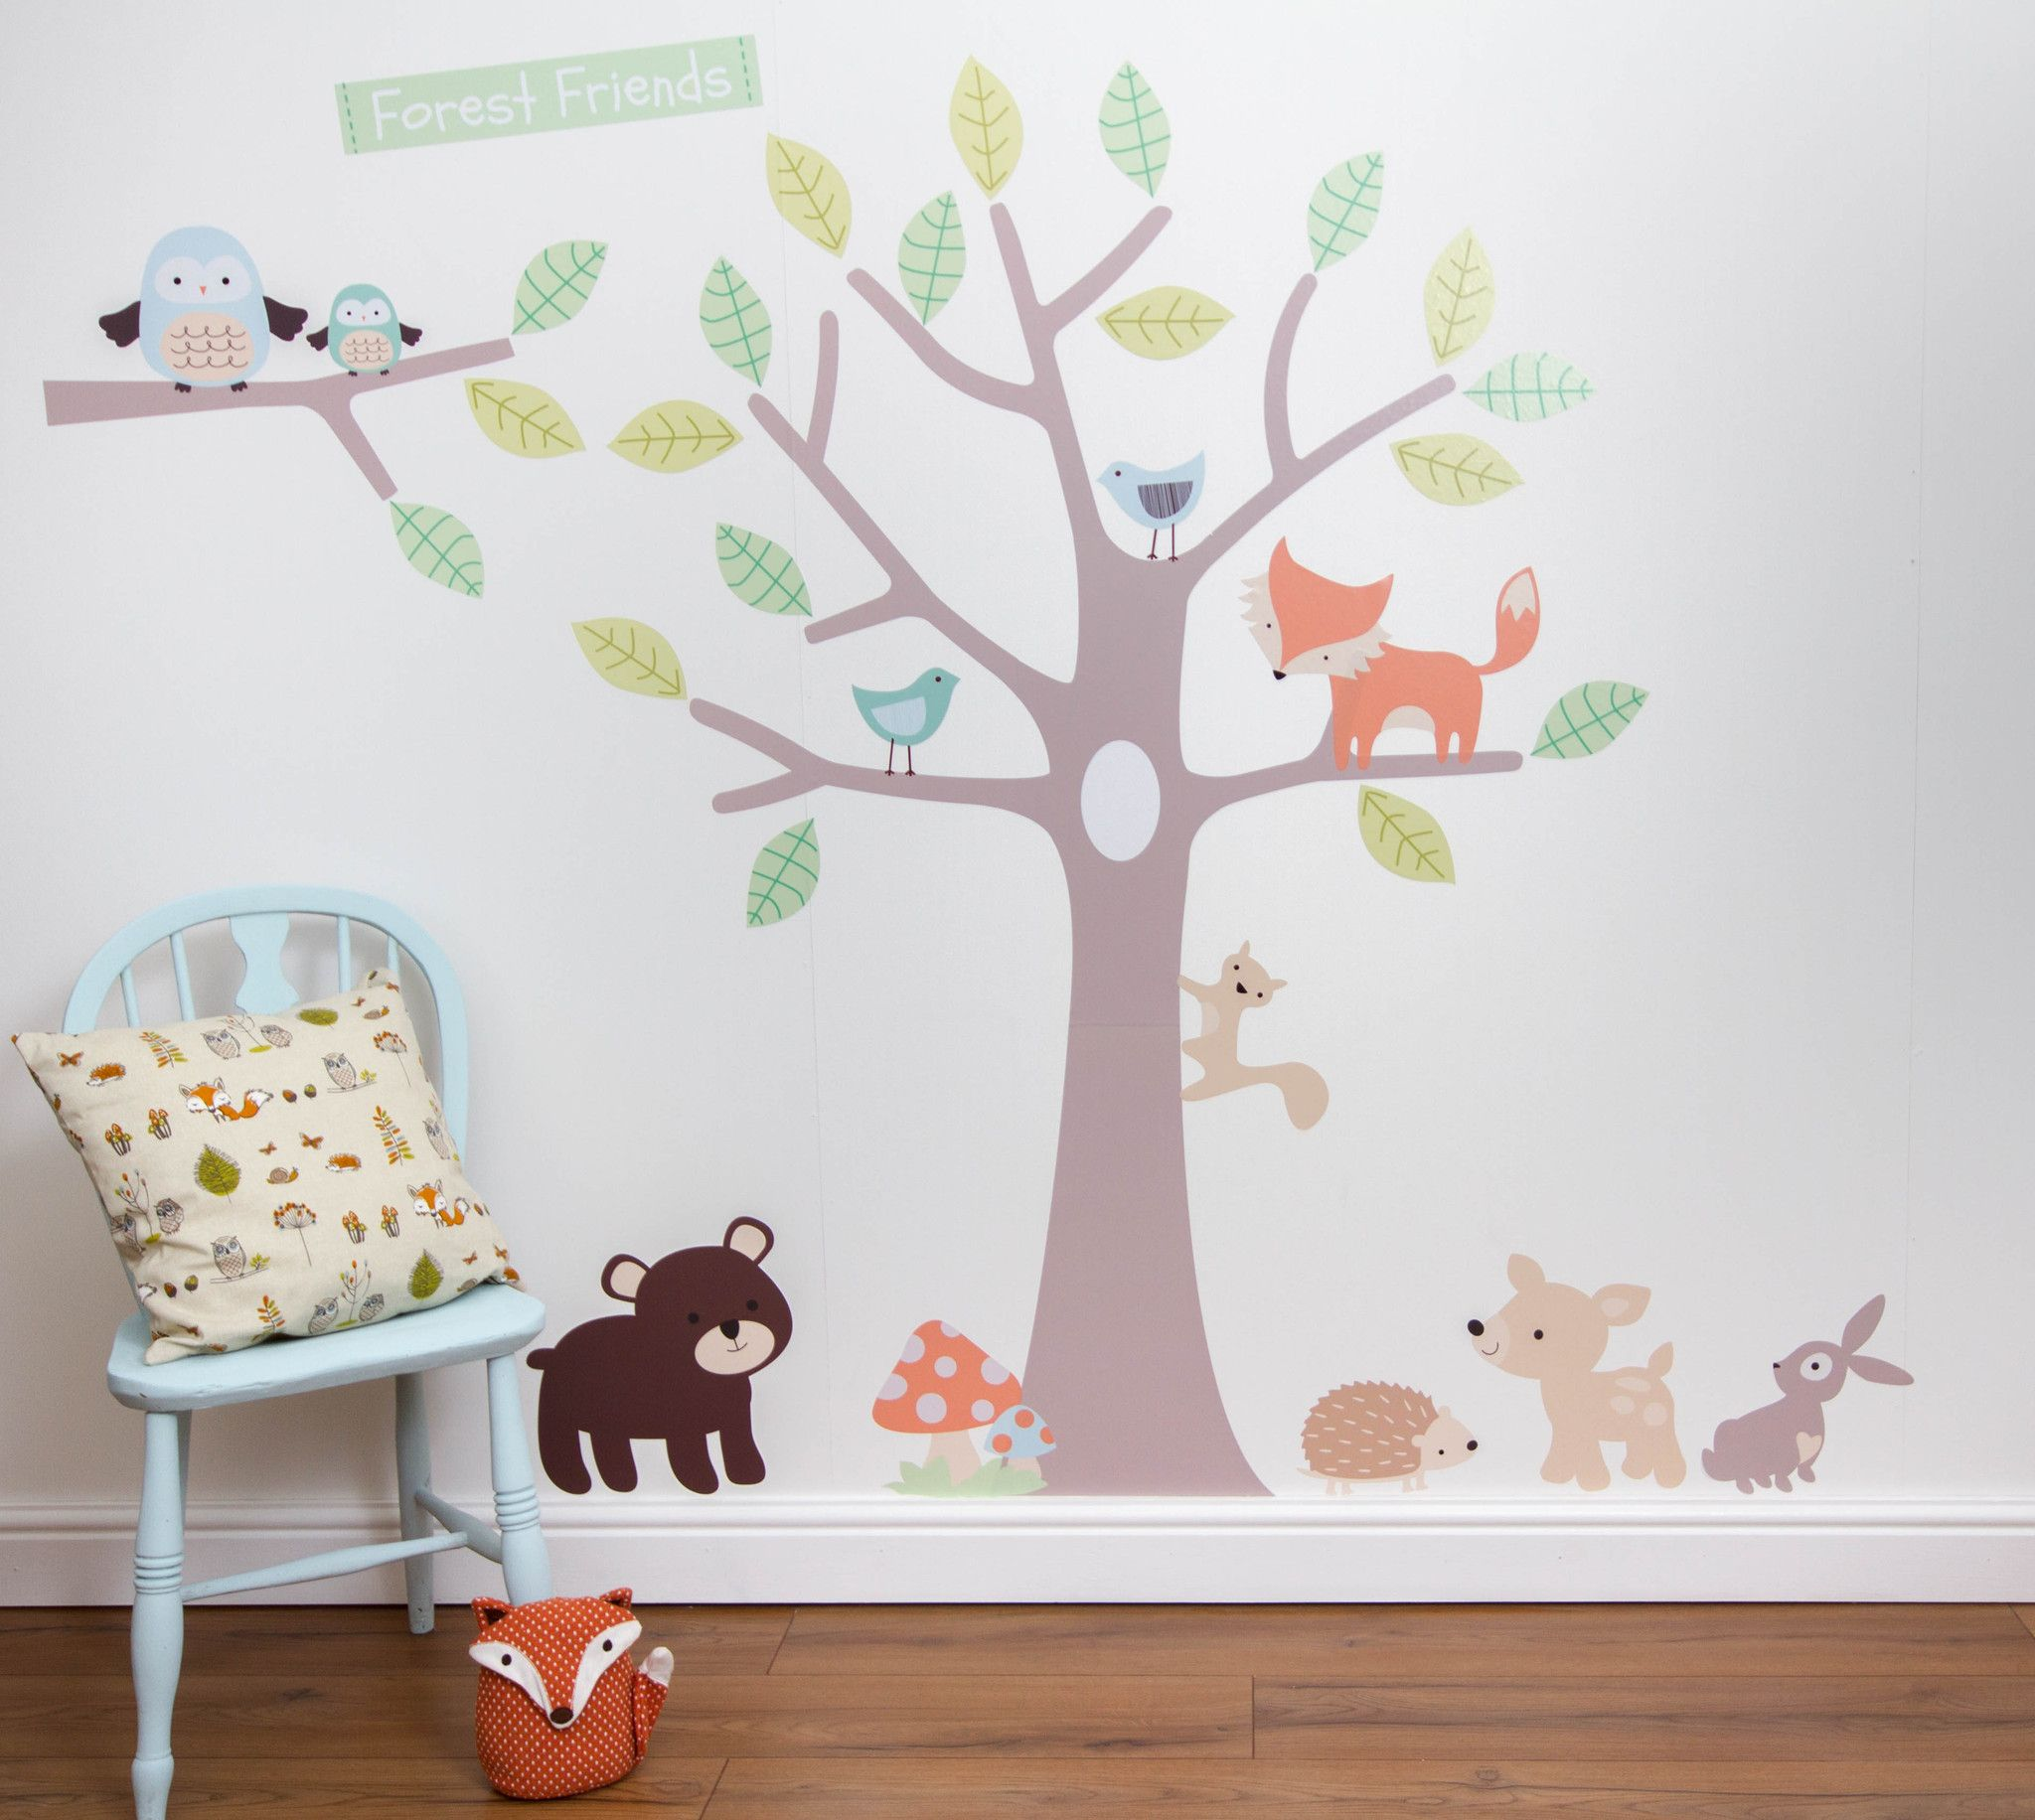 Pastel forest friends wall stickers forest friends wall pastel forest friends wall stickers amipublicfo Images